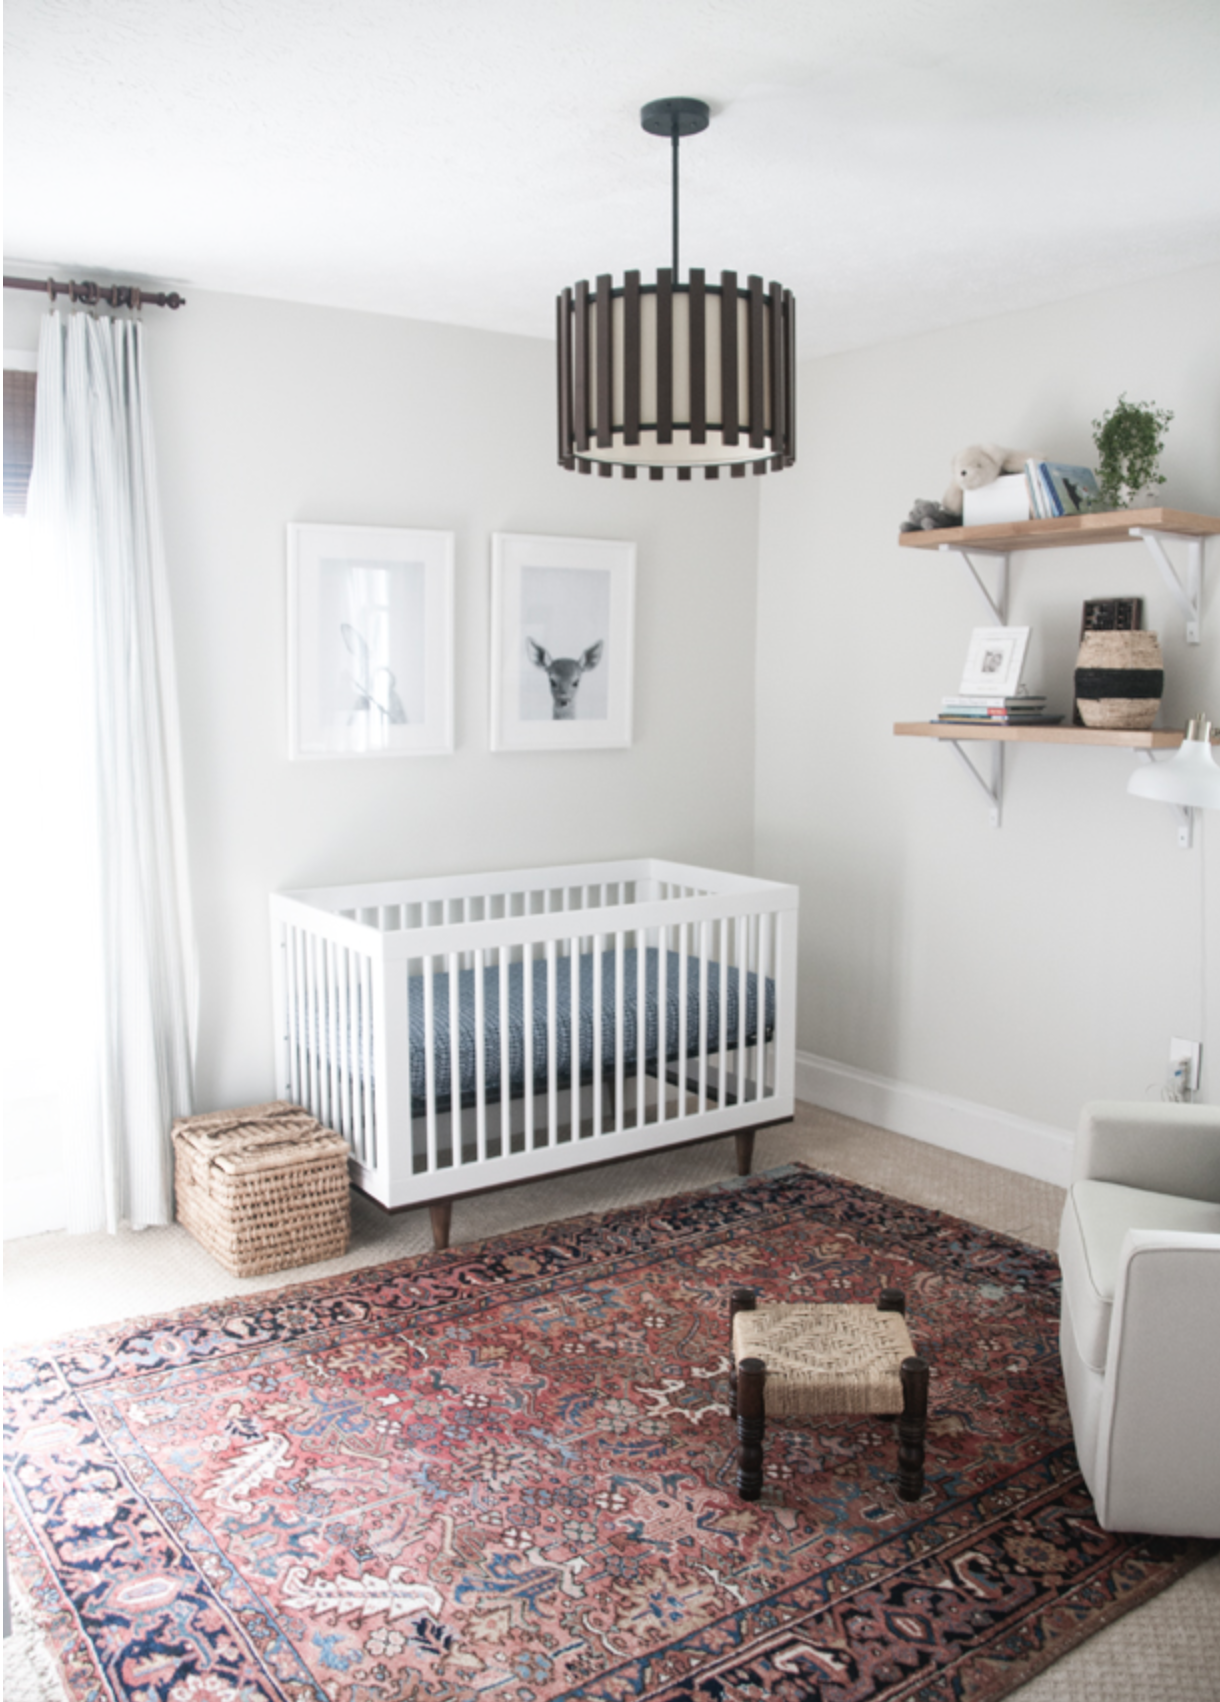 Explore Bedroom Lighting Ideas On Pinterest See More About Cute Baby Boy Room Nursery Neutral